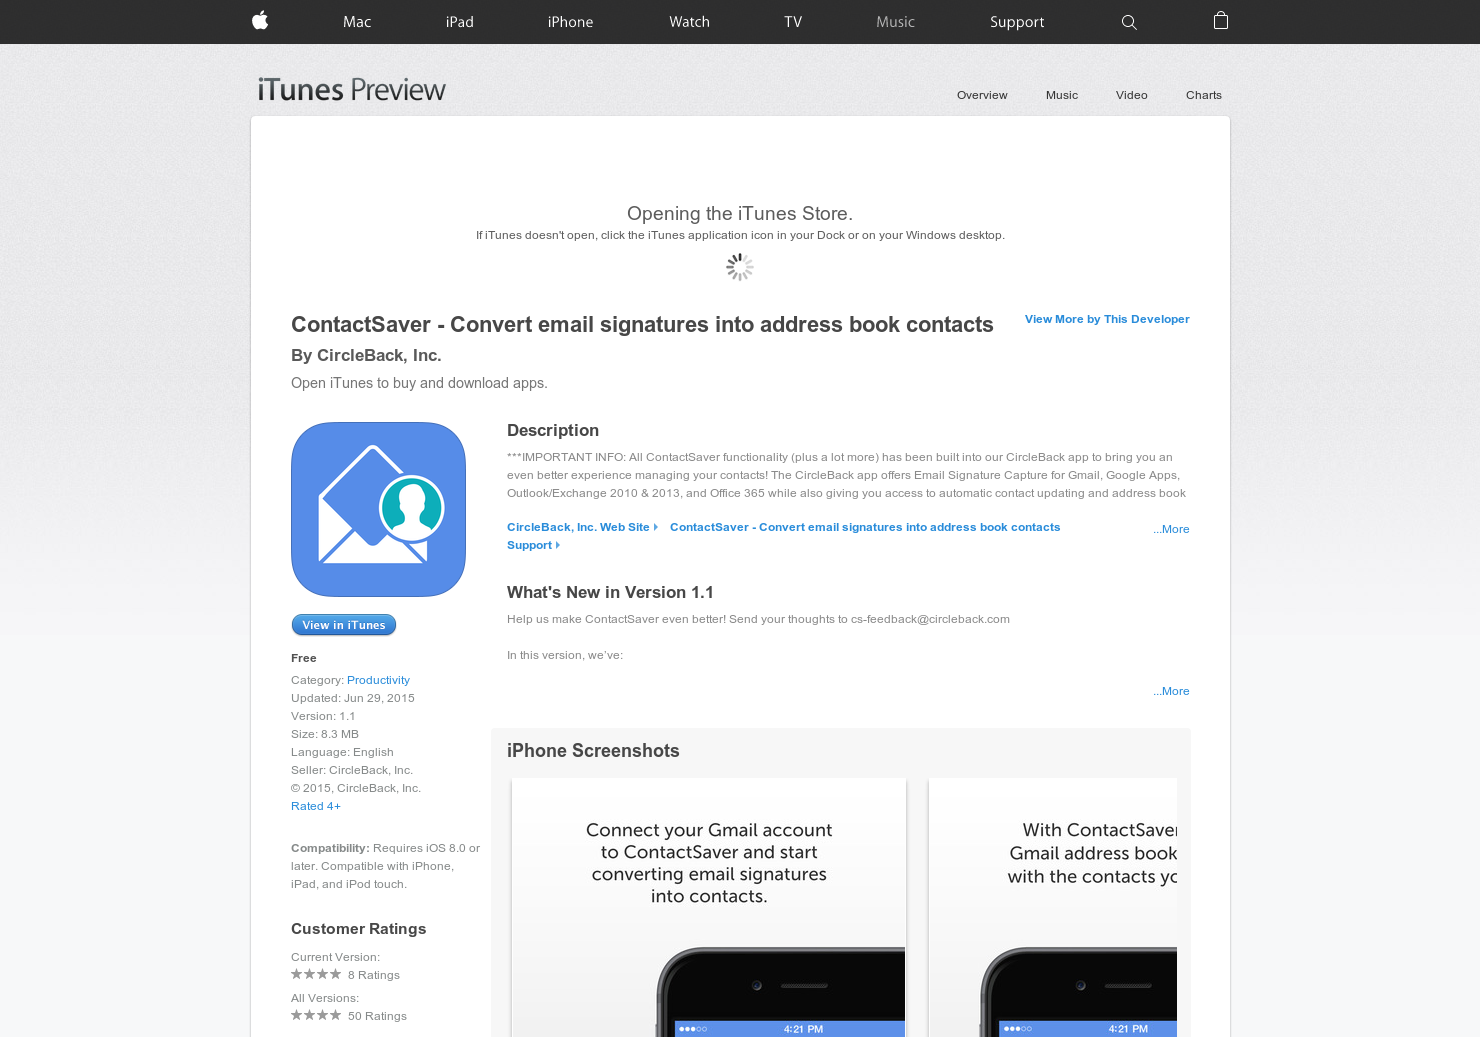 ContactSaver - Convert email signatures into address book contacts